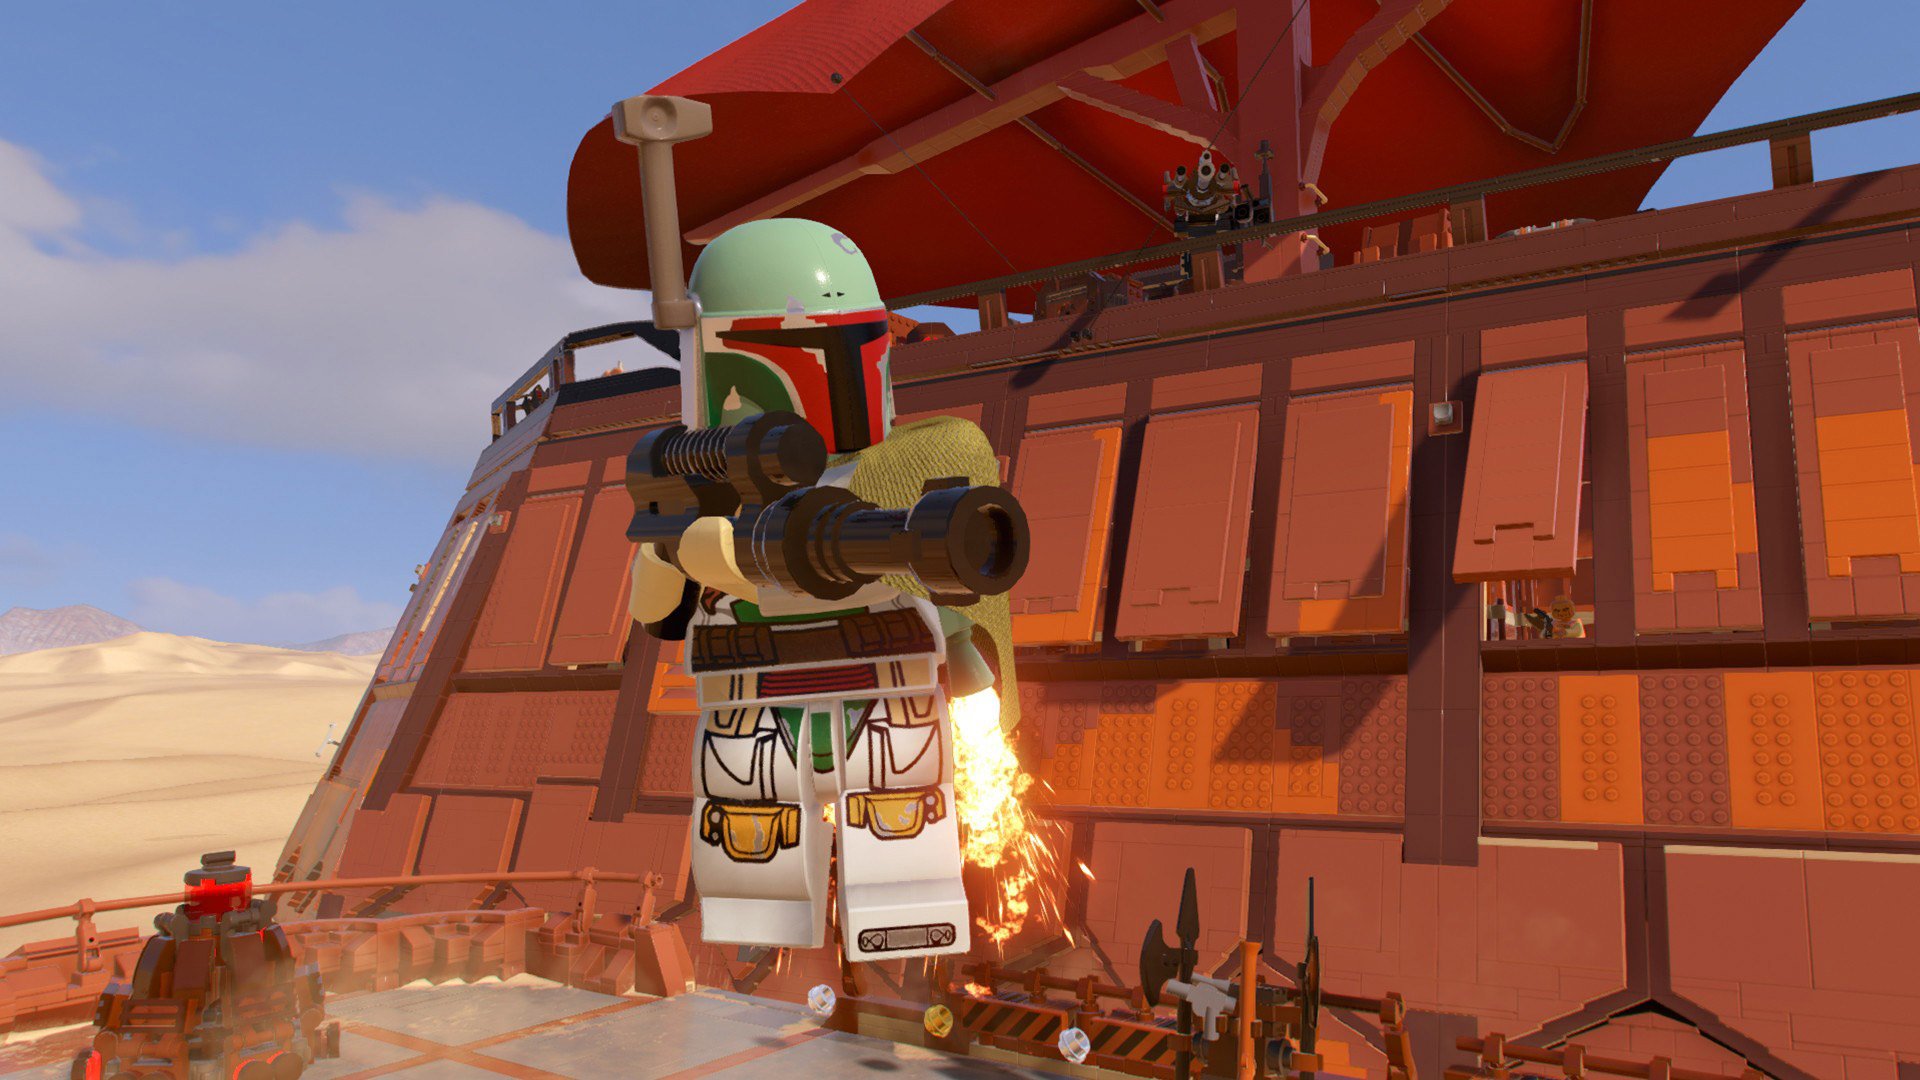 Free Lego Star Wars: The Skywalker Saga Wallpaper in 1920x1080